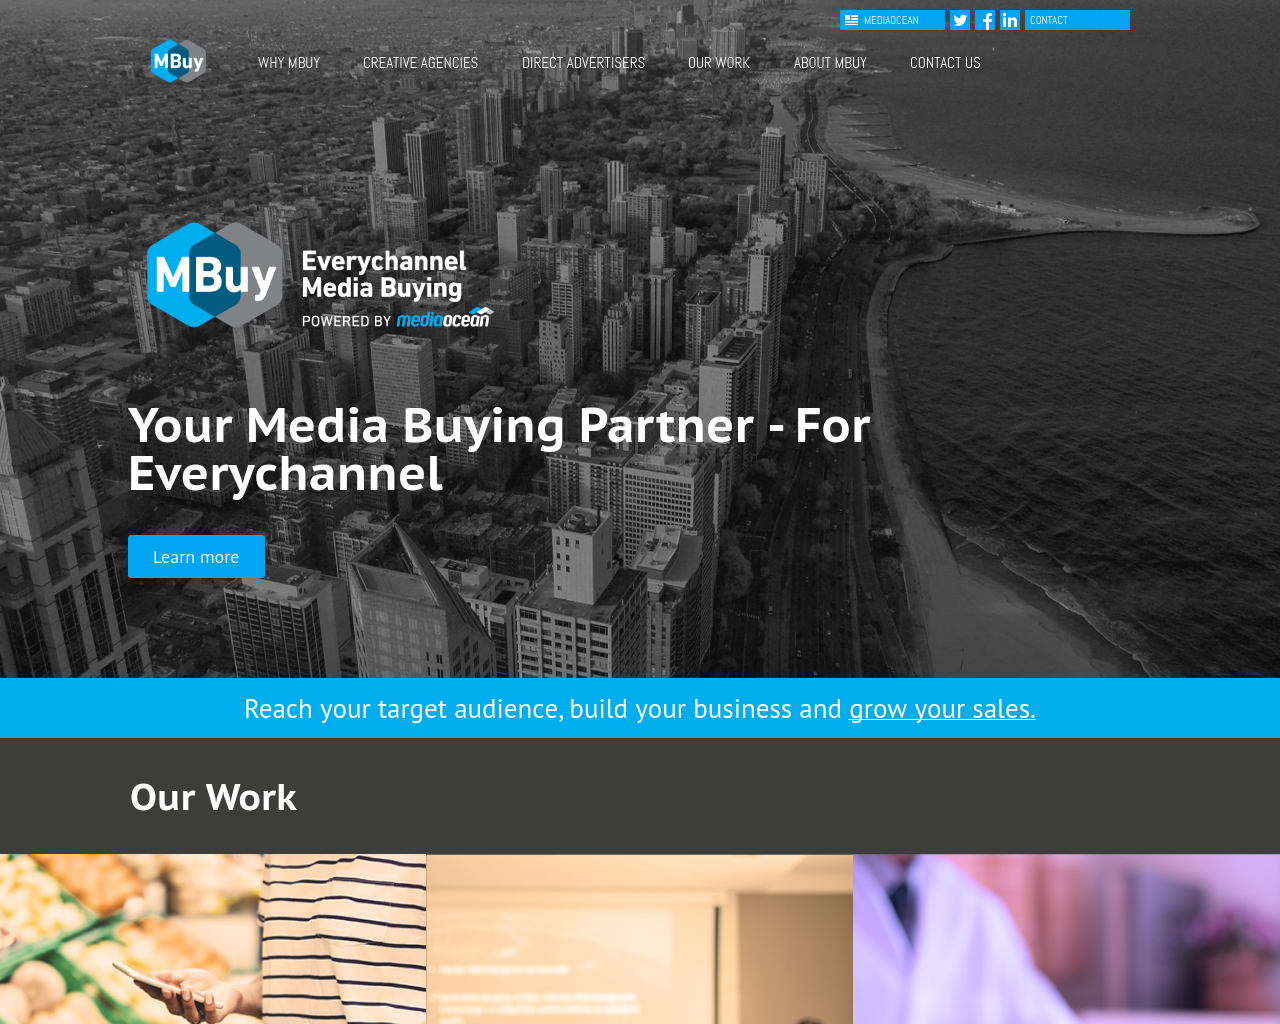 MBuy-Advertising-Reviews-Pricing